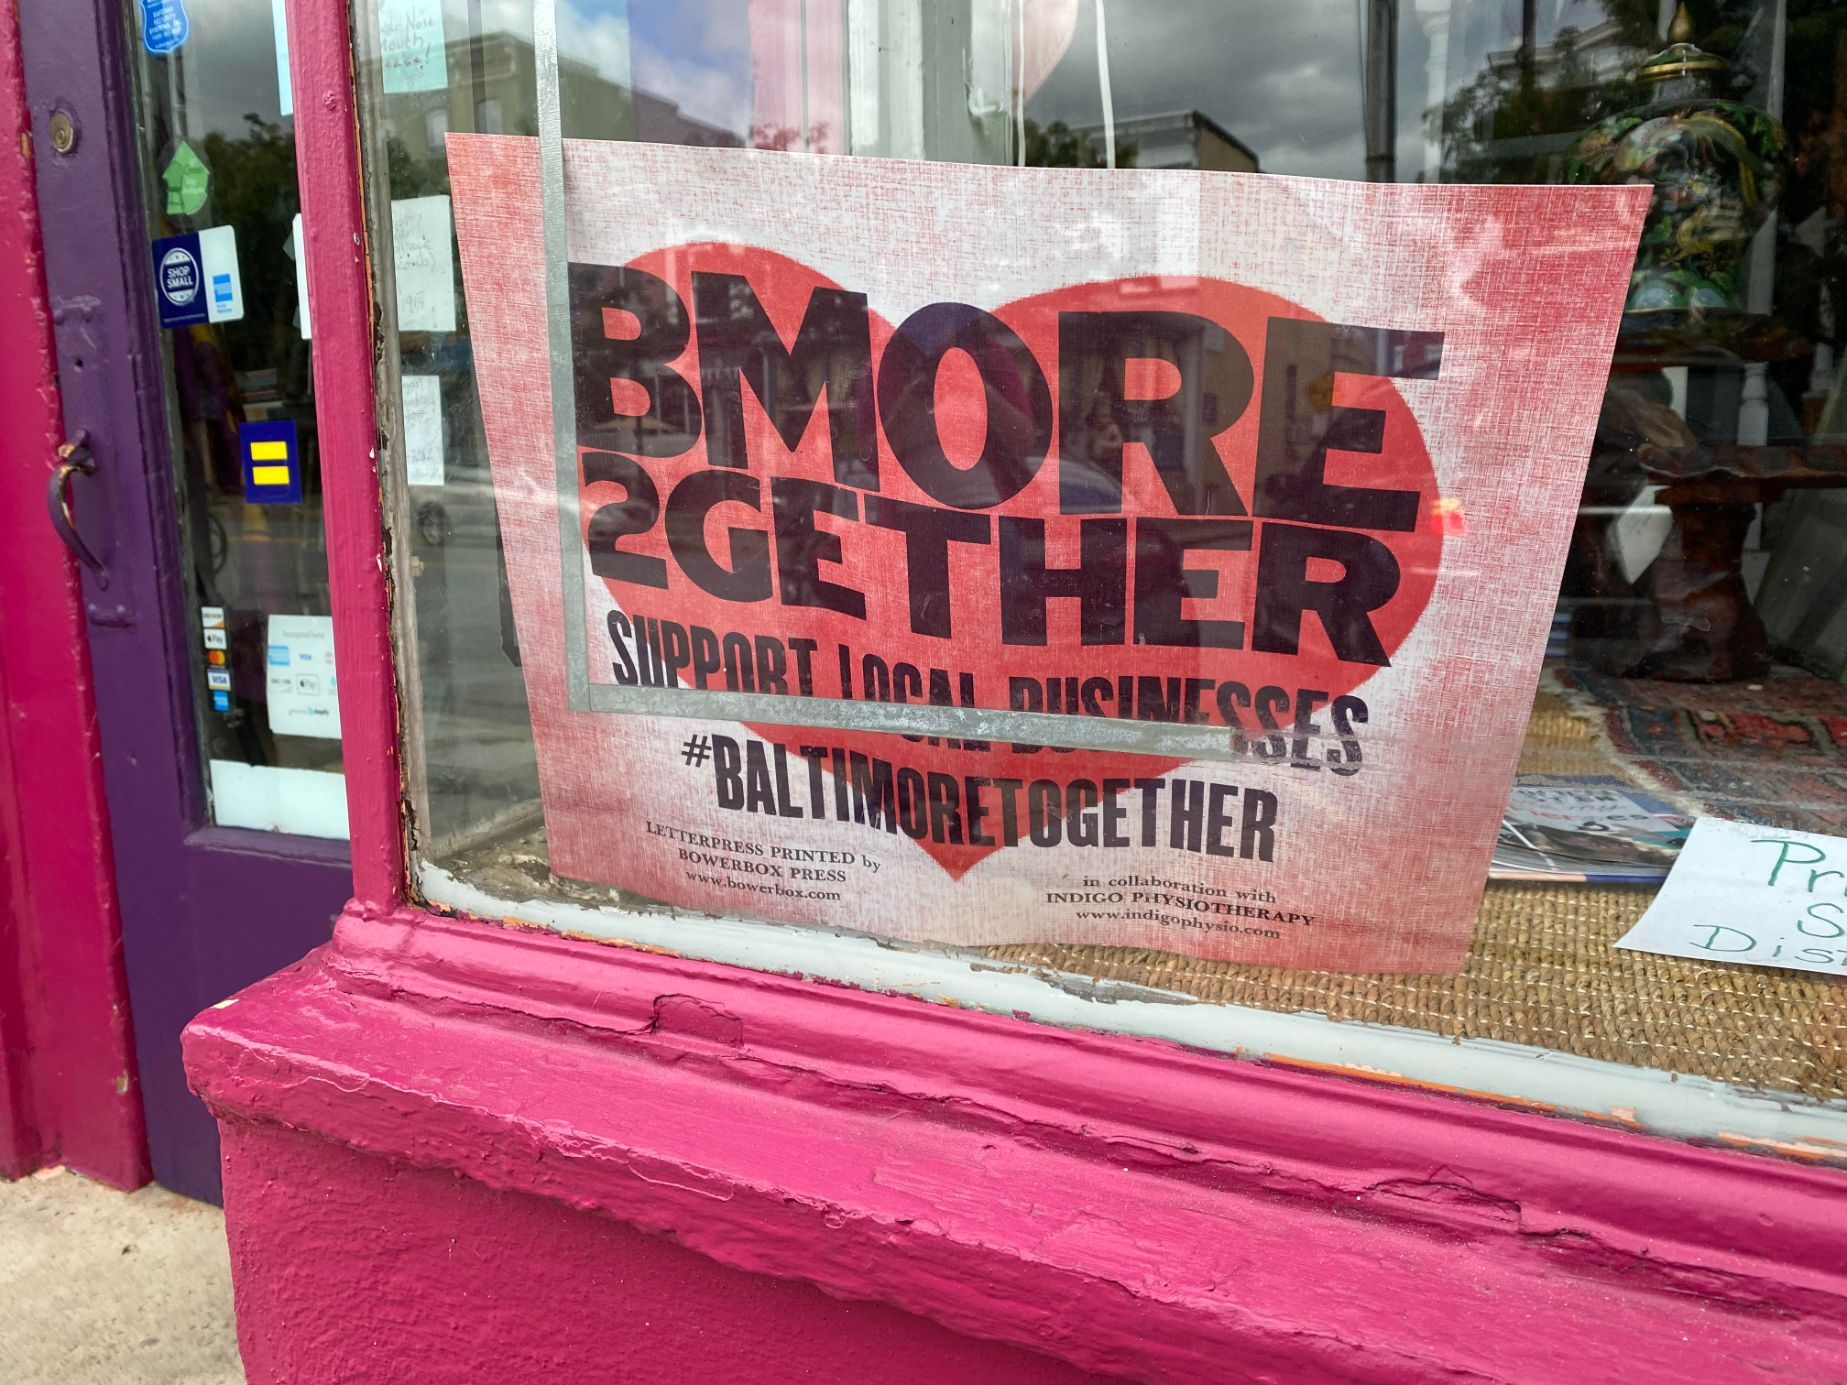 Bmore together